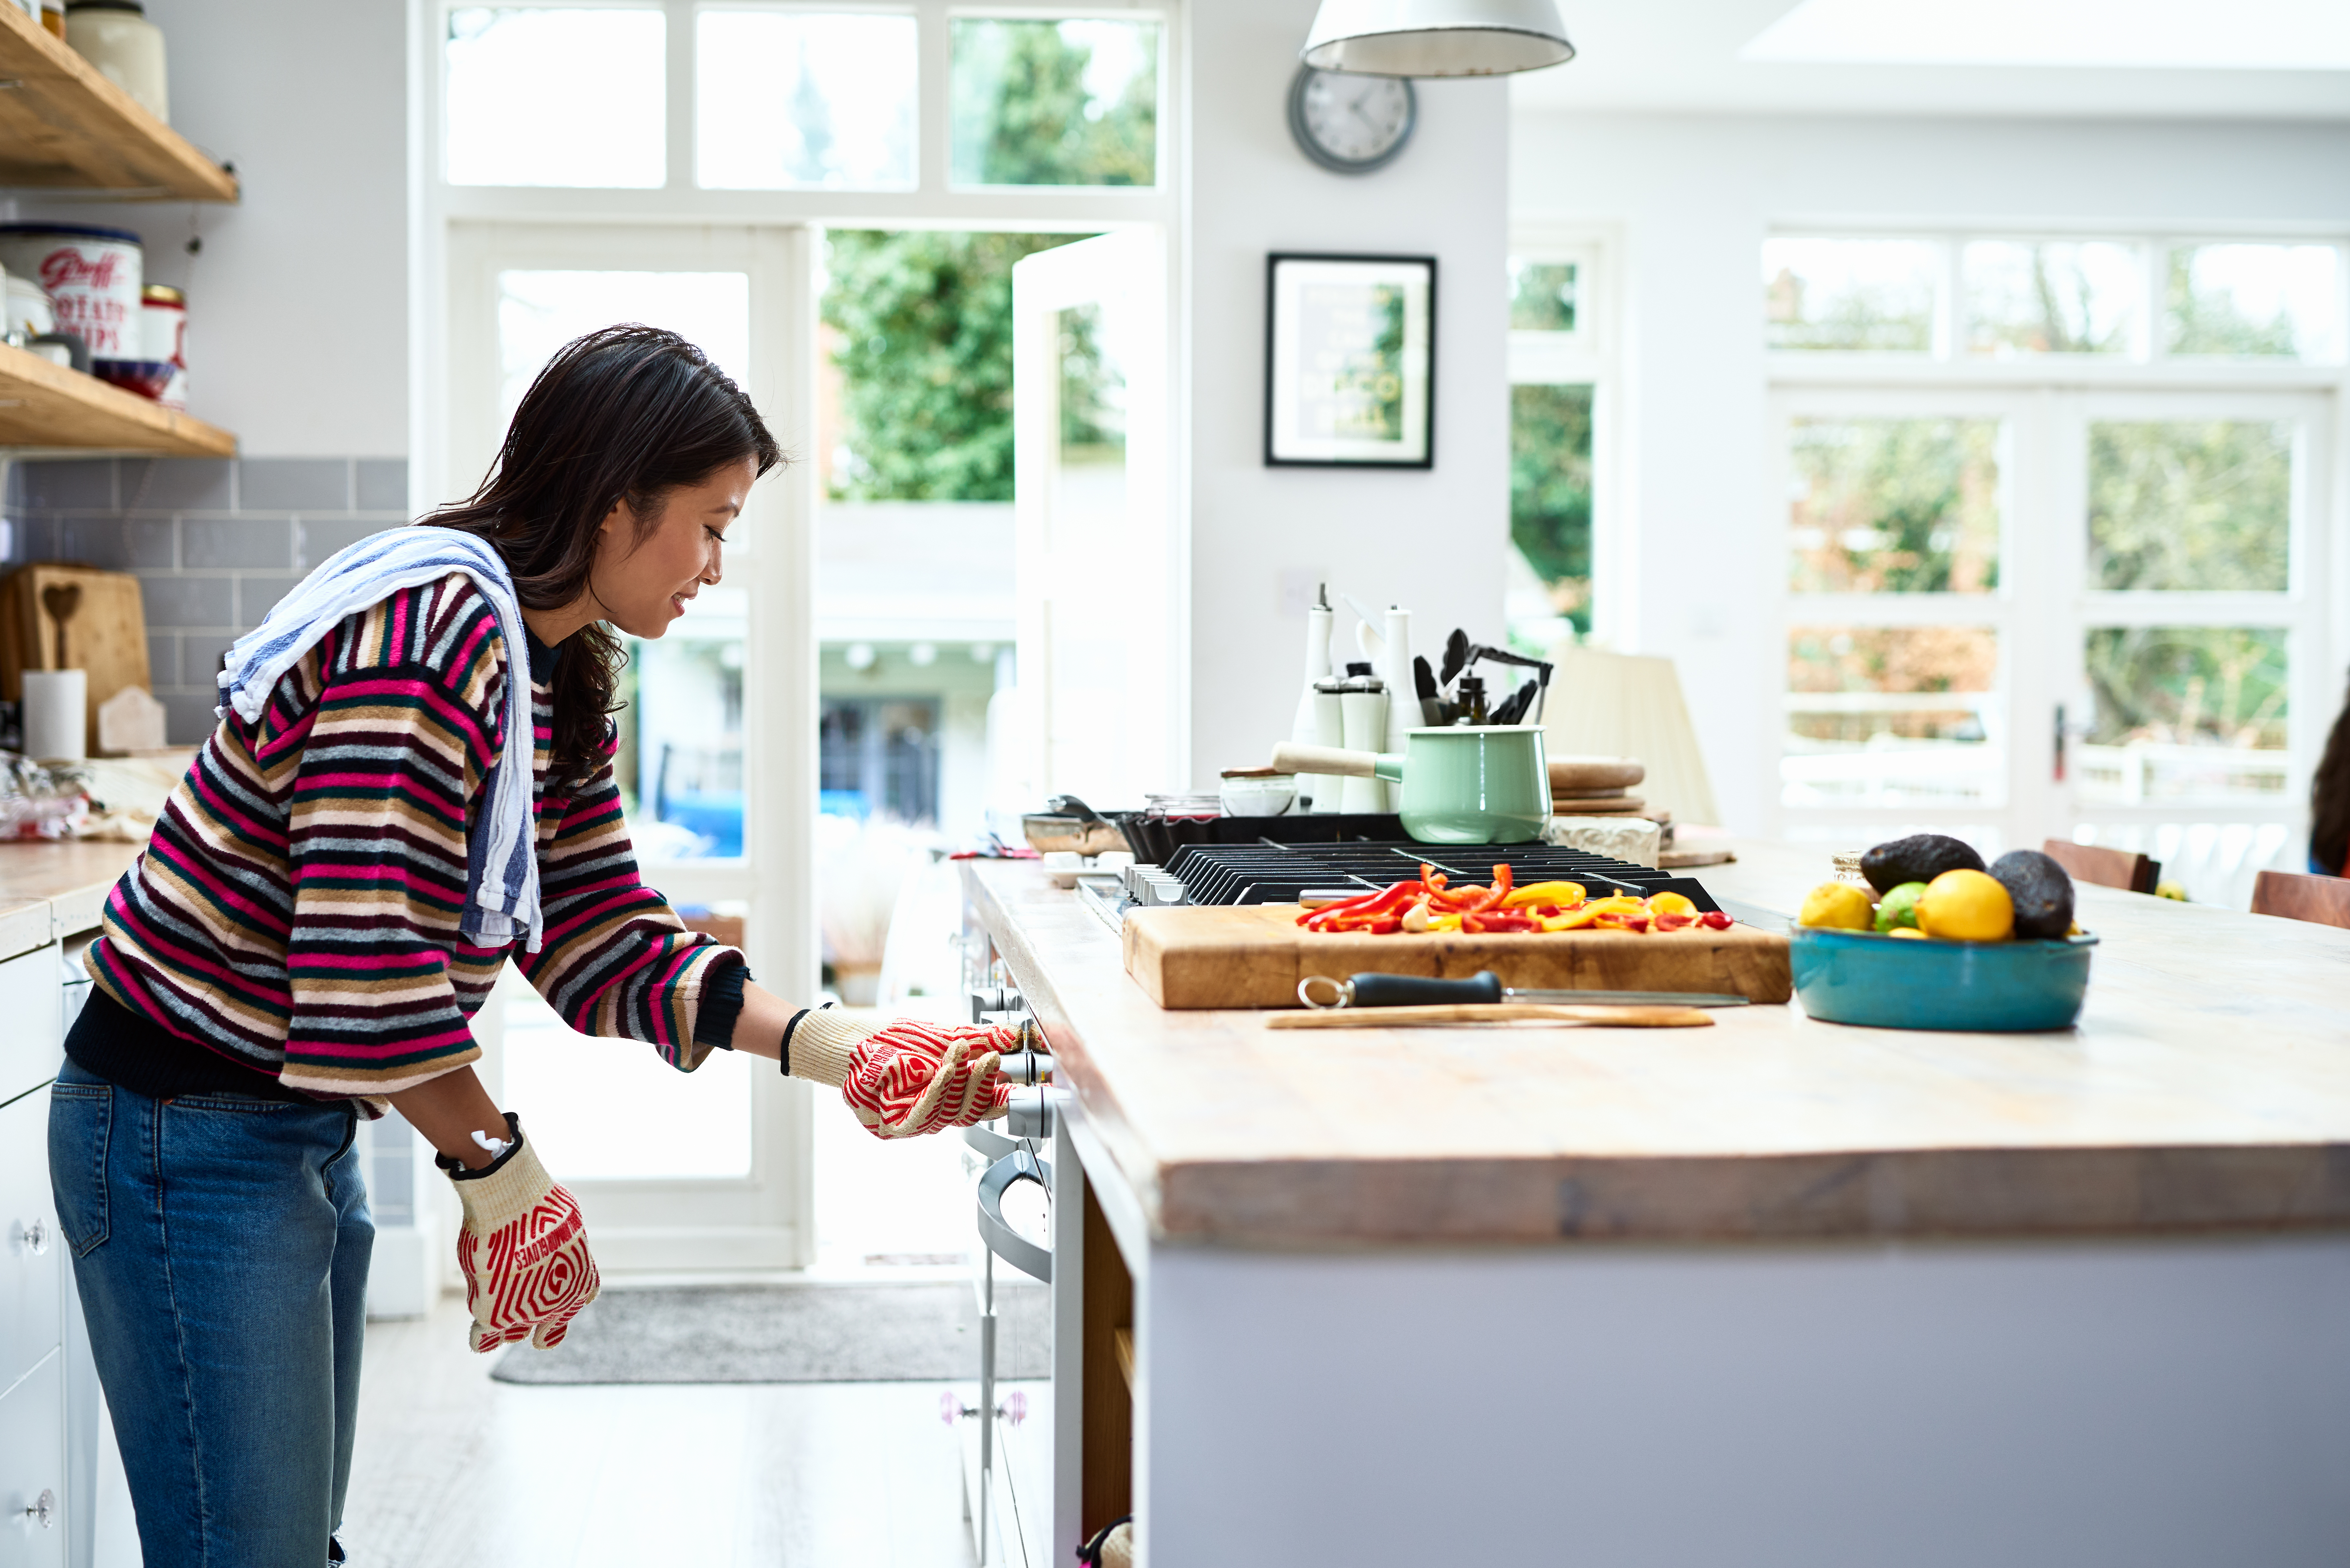 Woman adjusting oven and preparing dinner in kitchen